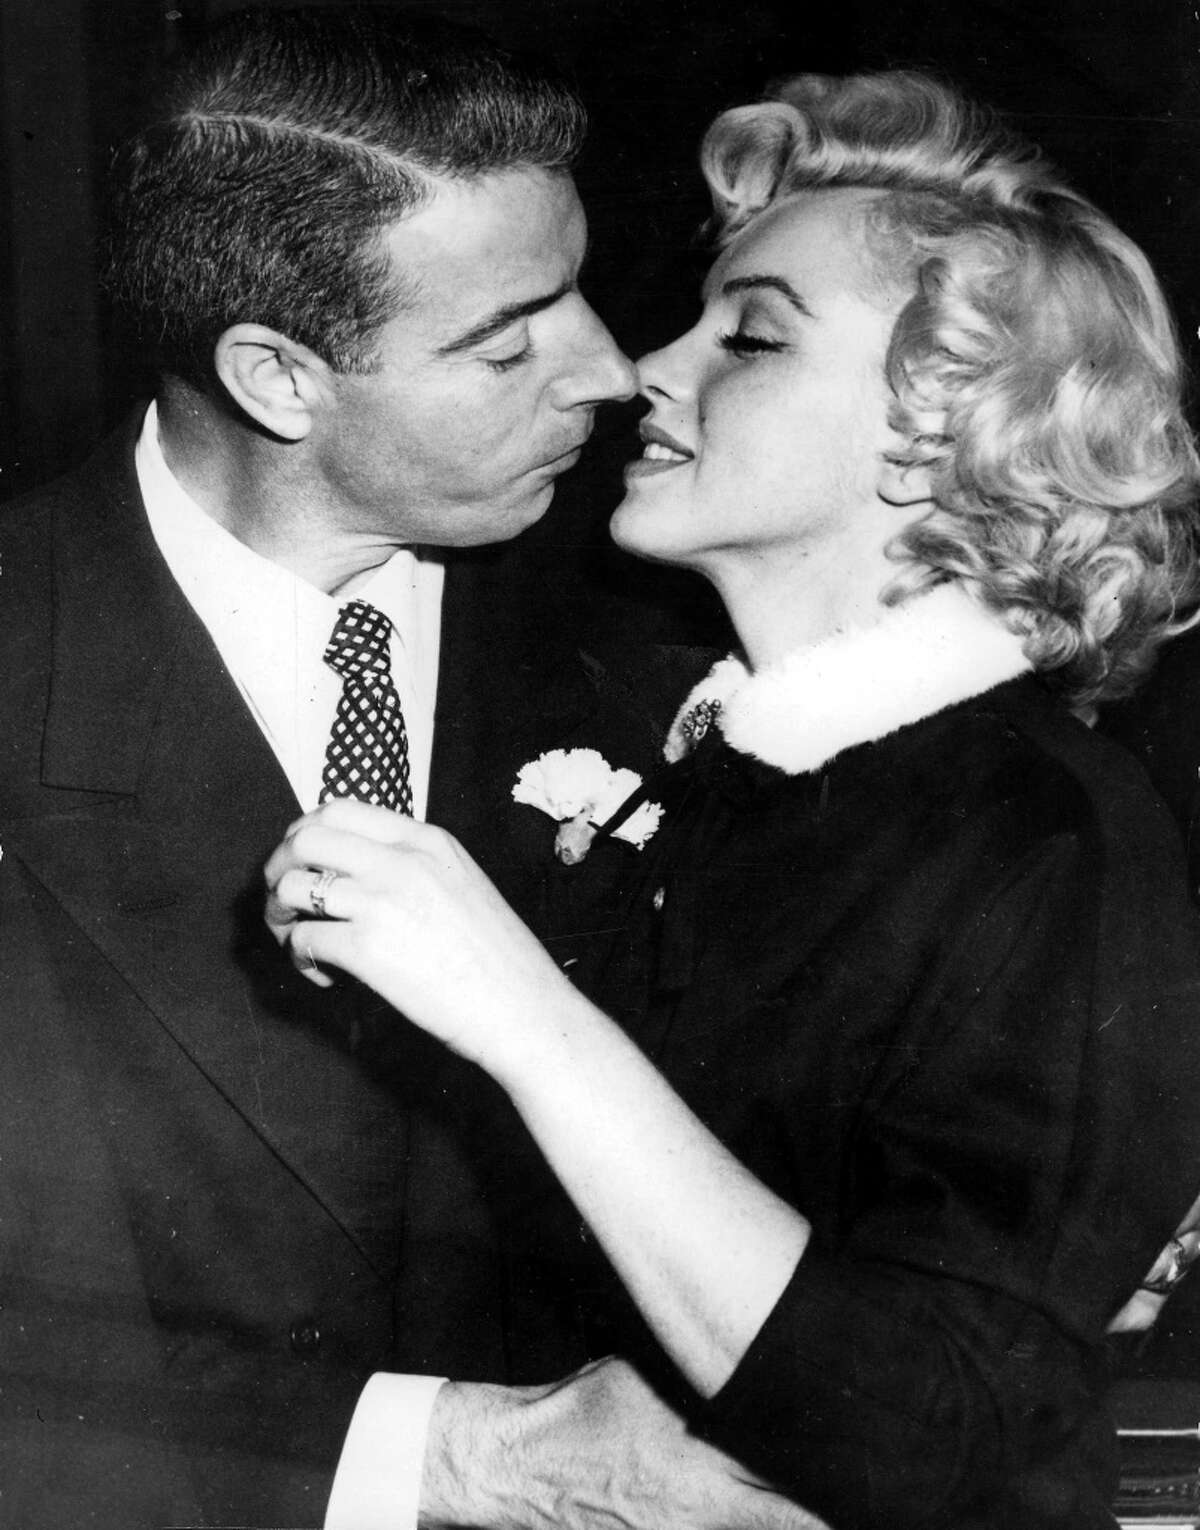 Marilyn Monroe and Joe DiMaggioIt doesn't get more American than this union: a blond bombshell actress and a beloved baseball player. Though the relationship had its ups and downs, as evidenced by the couple's divorce in 1954, the couple's union truly was 'til death do us part.' When Monroe died of a drug overdose in 1962, it was DiMaggio who claimed her body. He also had a dozen red roses delivered to her tombstone twice a week for the next 20 years.